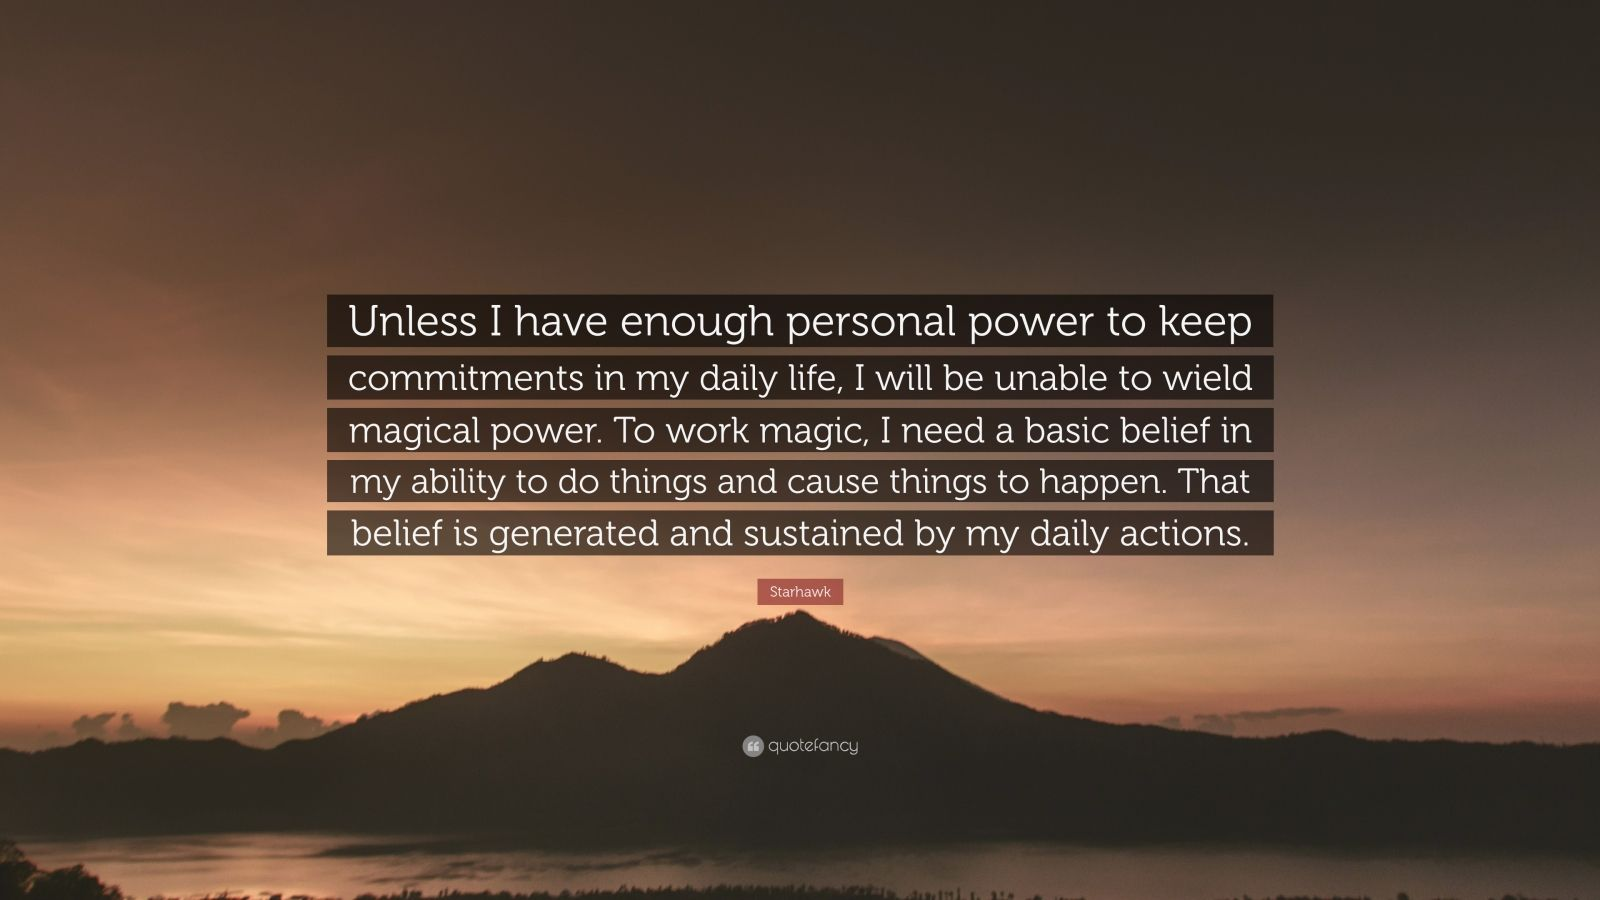 """Starhawk Quote: """"Unless I have enough personal power to keep commitments in my daily life, I will be unable to wield magical power. To work magic, I need a basic belief in my ability to do things and cause things to happen. That belief is generated and sustained by my daily actions."""""""